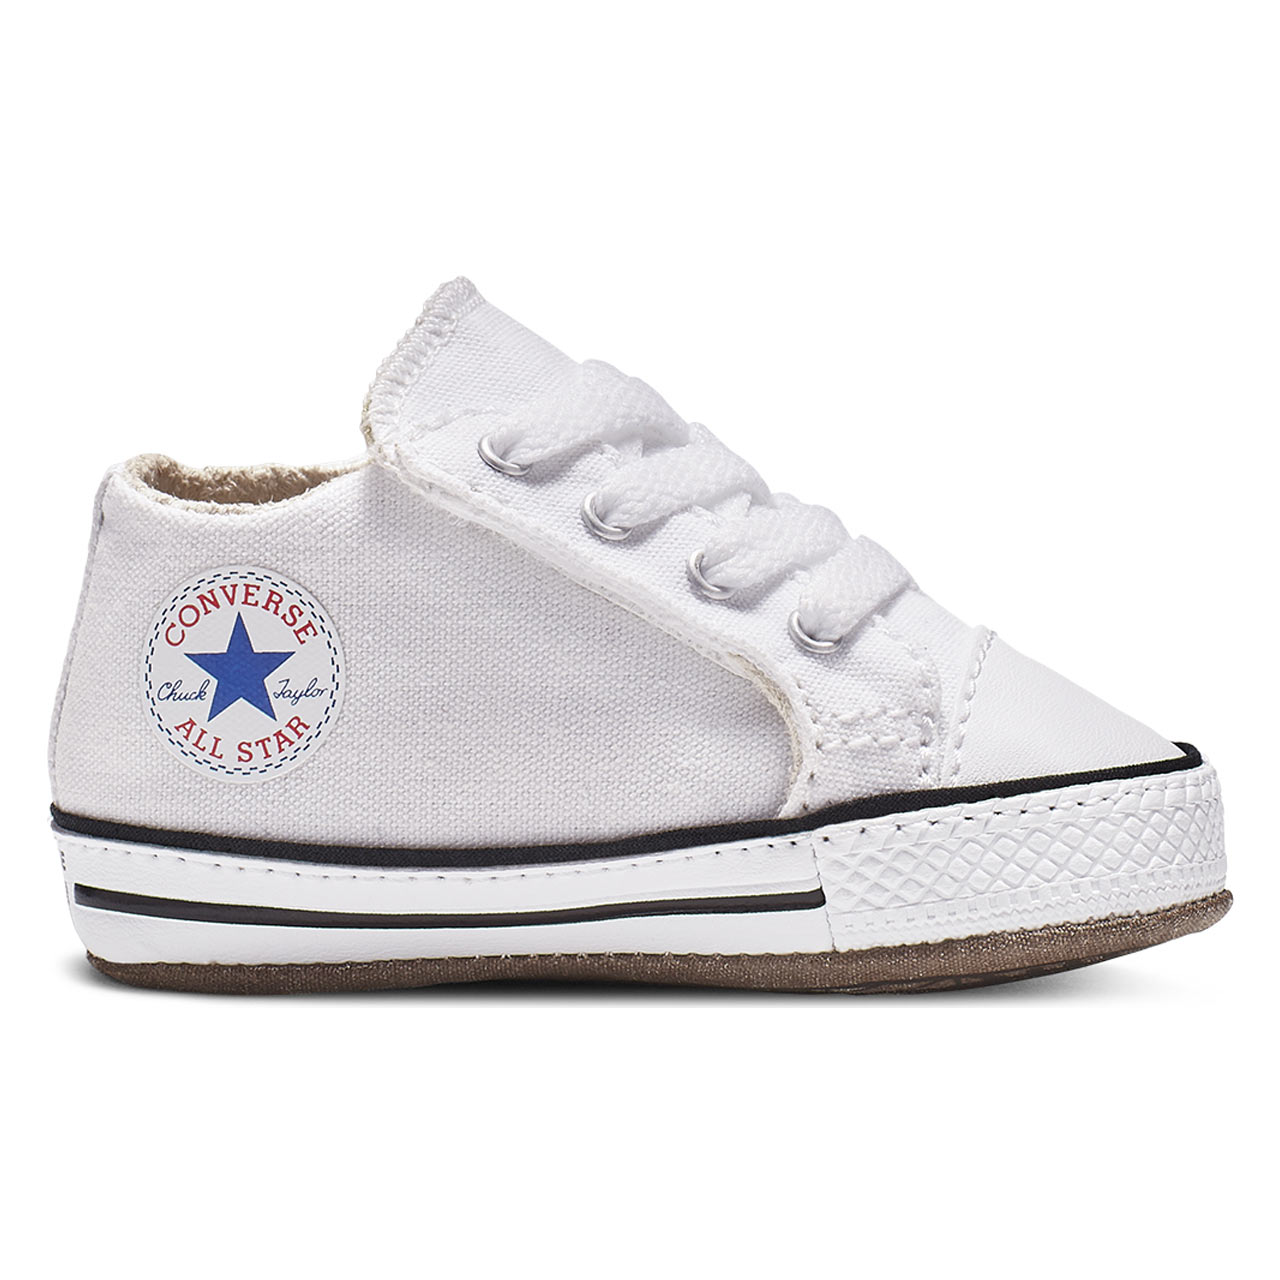 Baby Sneaker Chuck Taylor All Star Cribster weiß